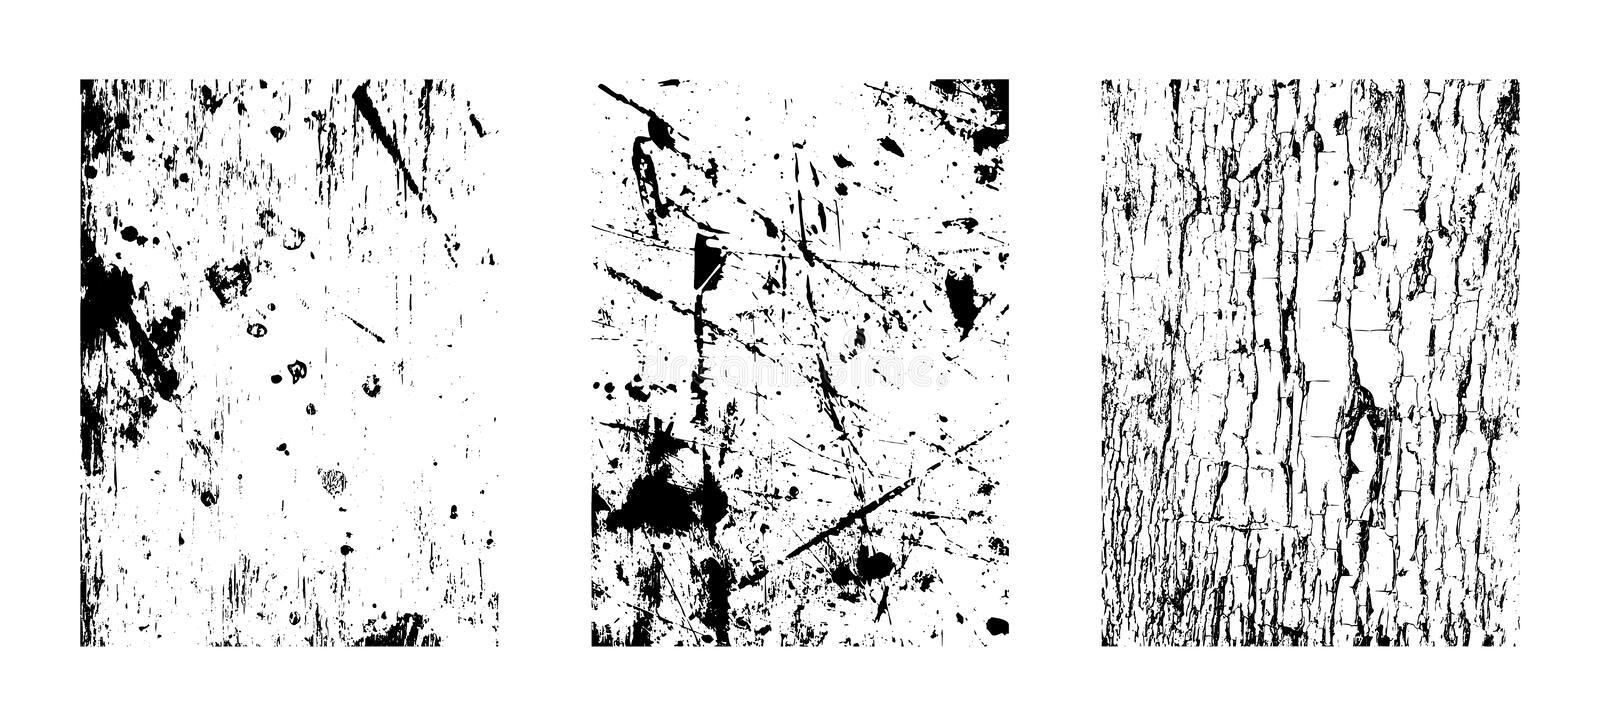 Scratchy Textures, Abstract Grunge Backdrops. Vector clipart illustrations isolated on white background. vector illustration